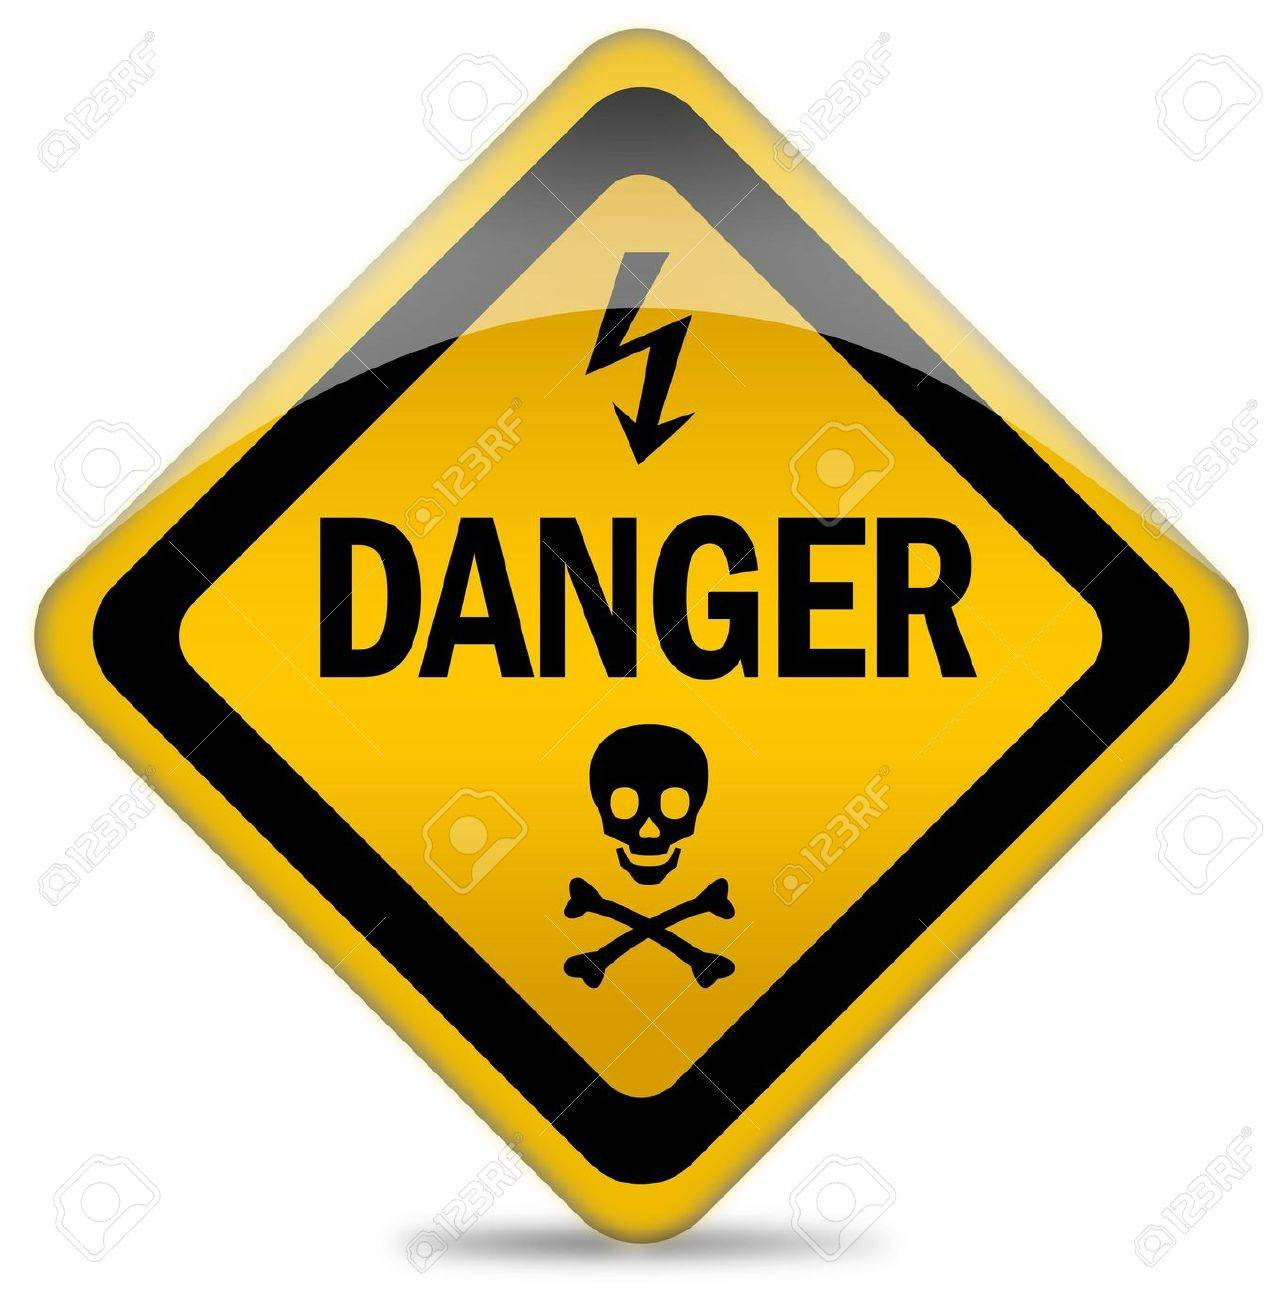 Danger warning sign Stock Photo - 7426706